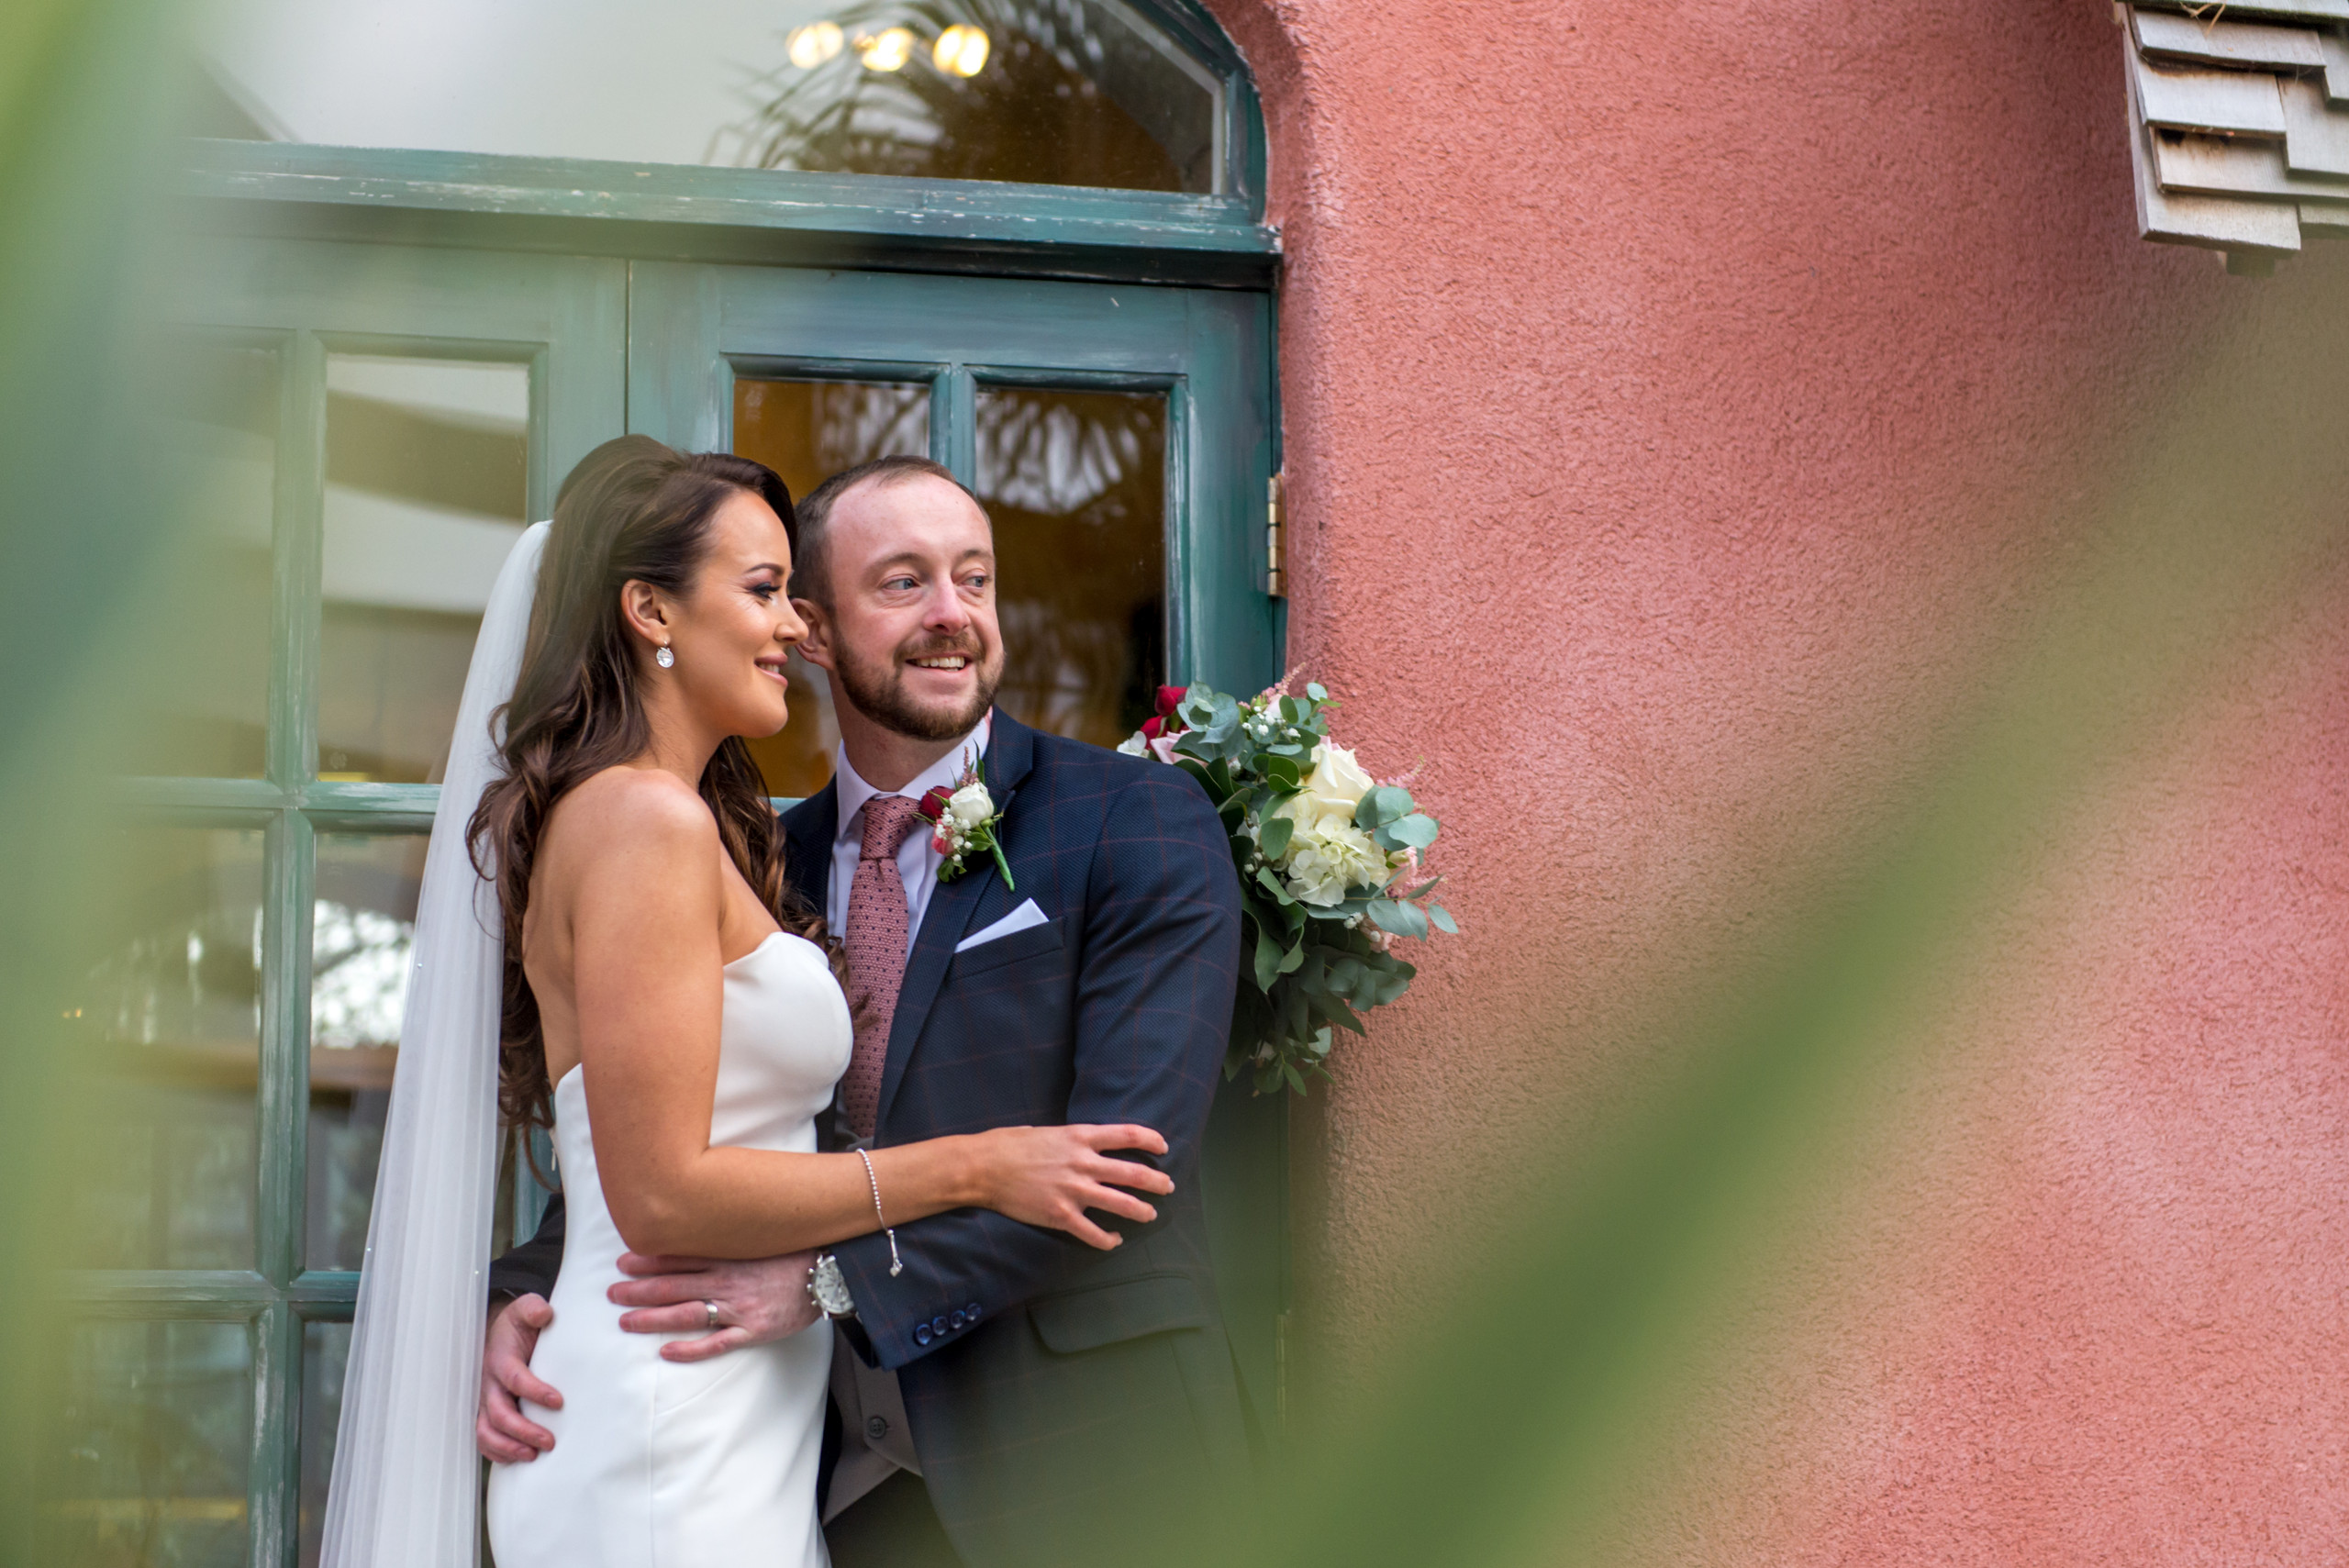 Relaxed posed photograph of bride and groom smiling on wedding day at Le Petit Chateau in Otterburn, Northumberland